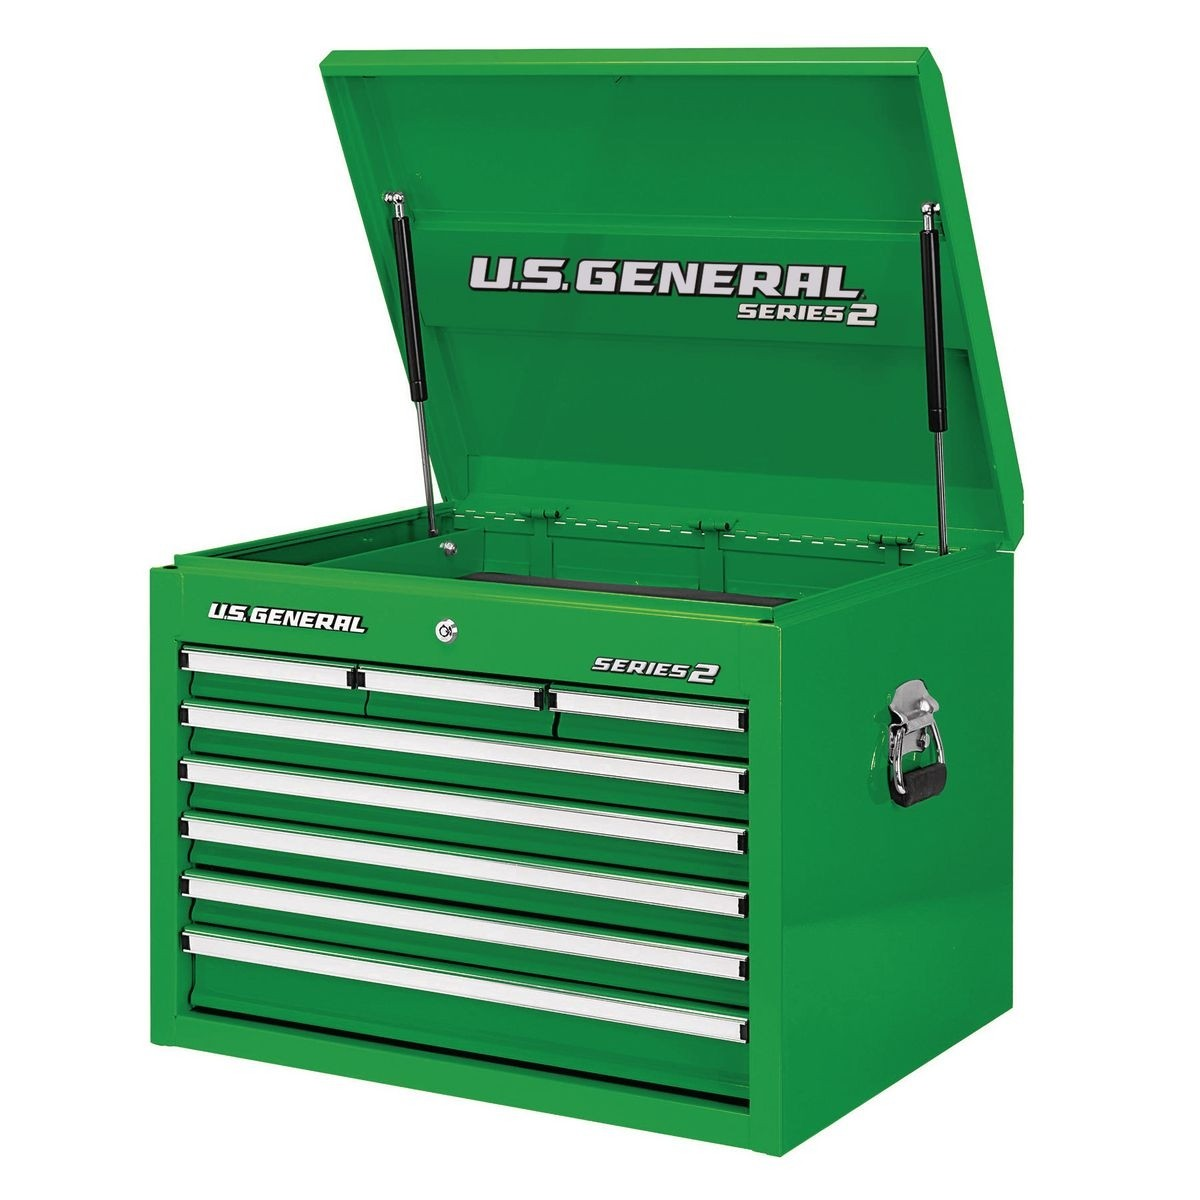 U.S. GENERAL 26 in. Single Bank Green Top Chest - Item 56231